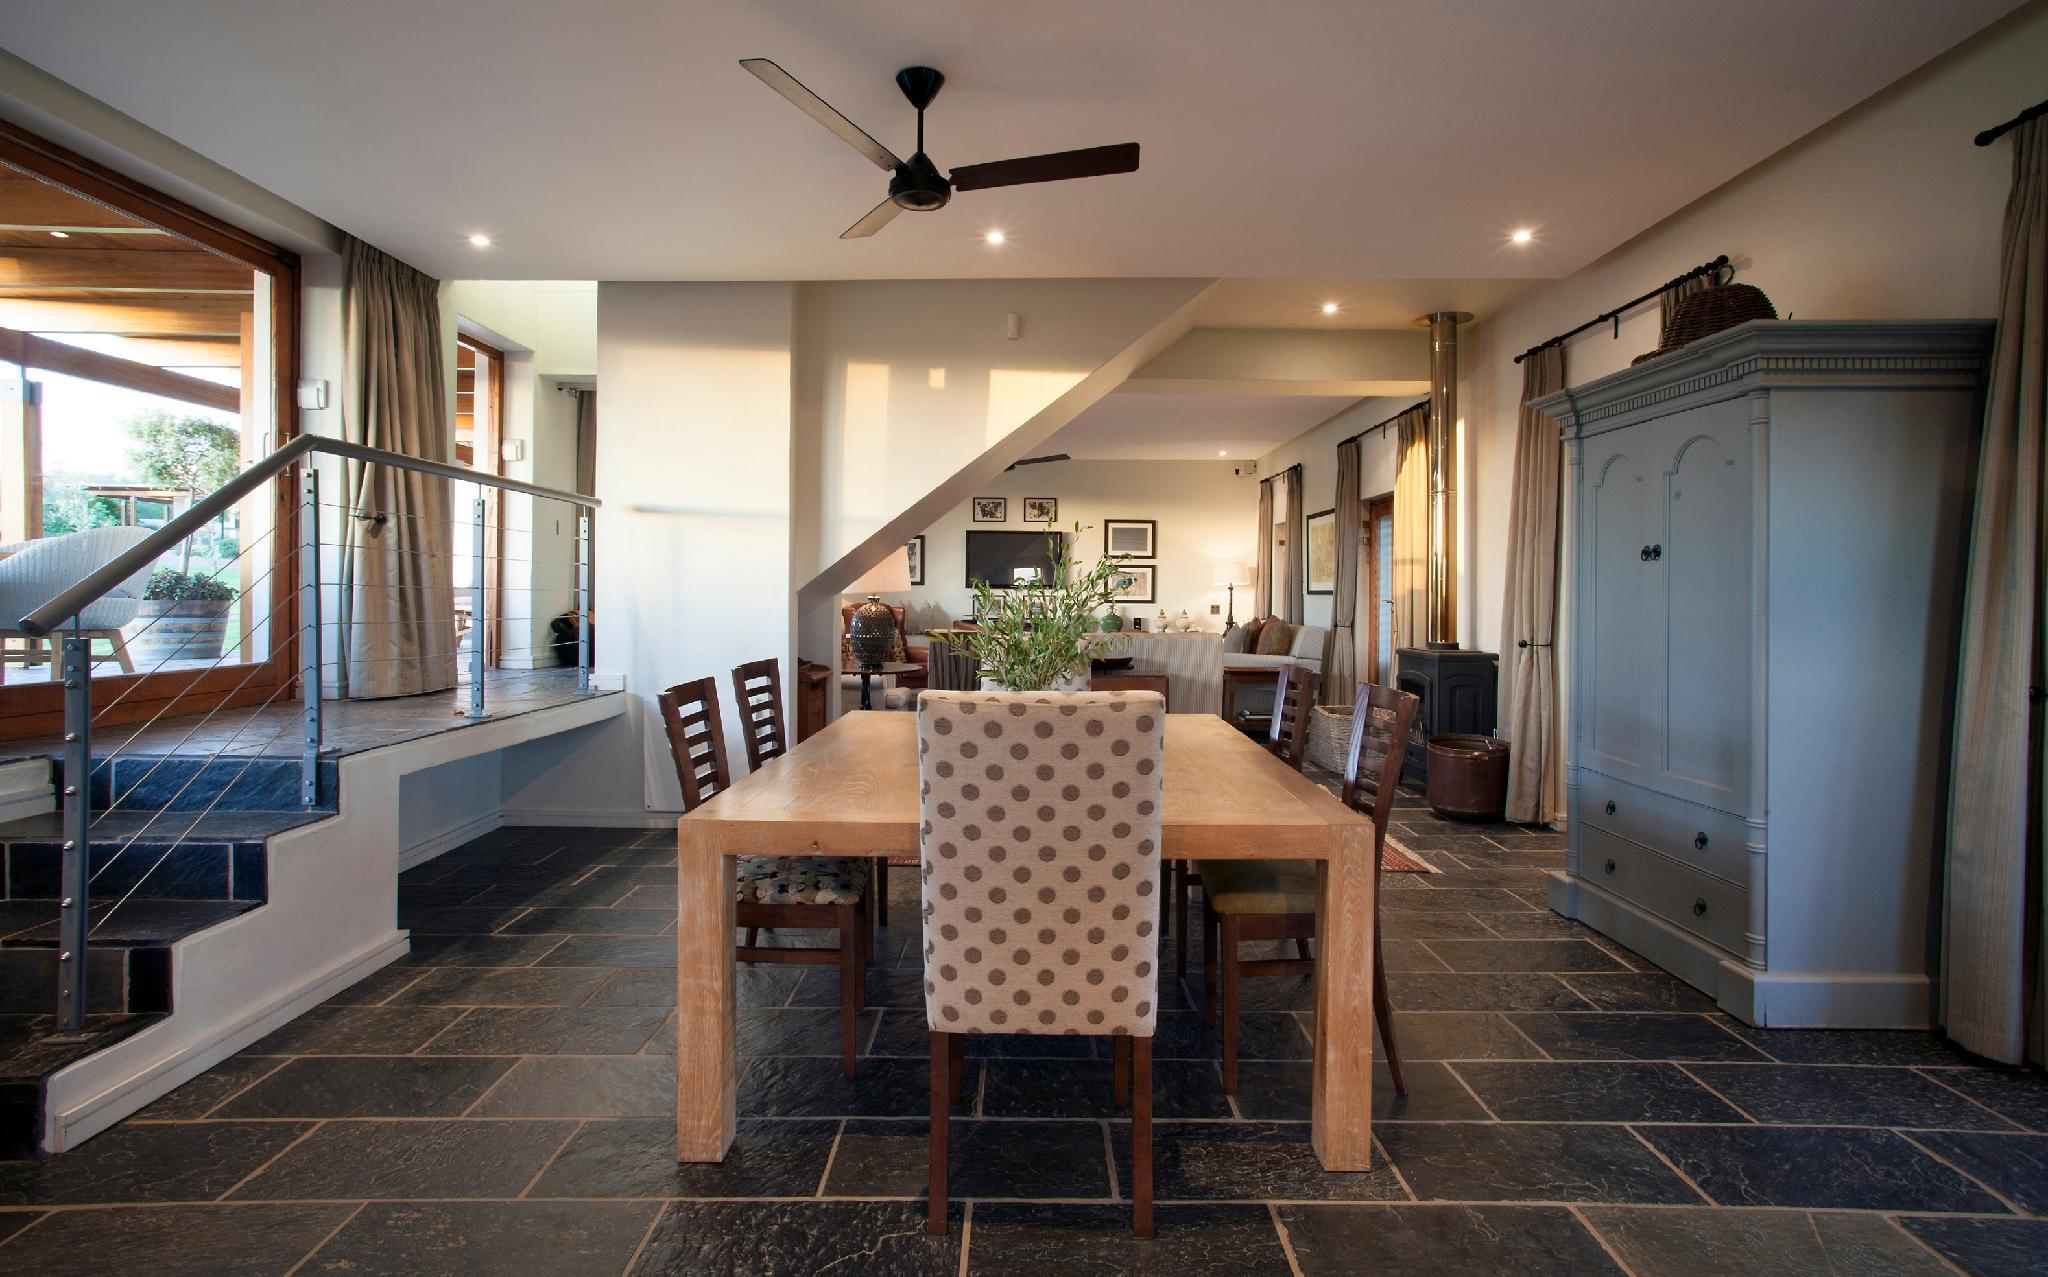 דירת קוטג דלוקס (Deluxe Cottage Apartment)